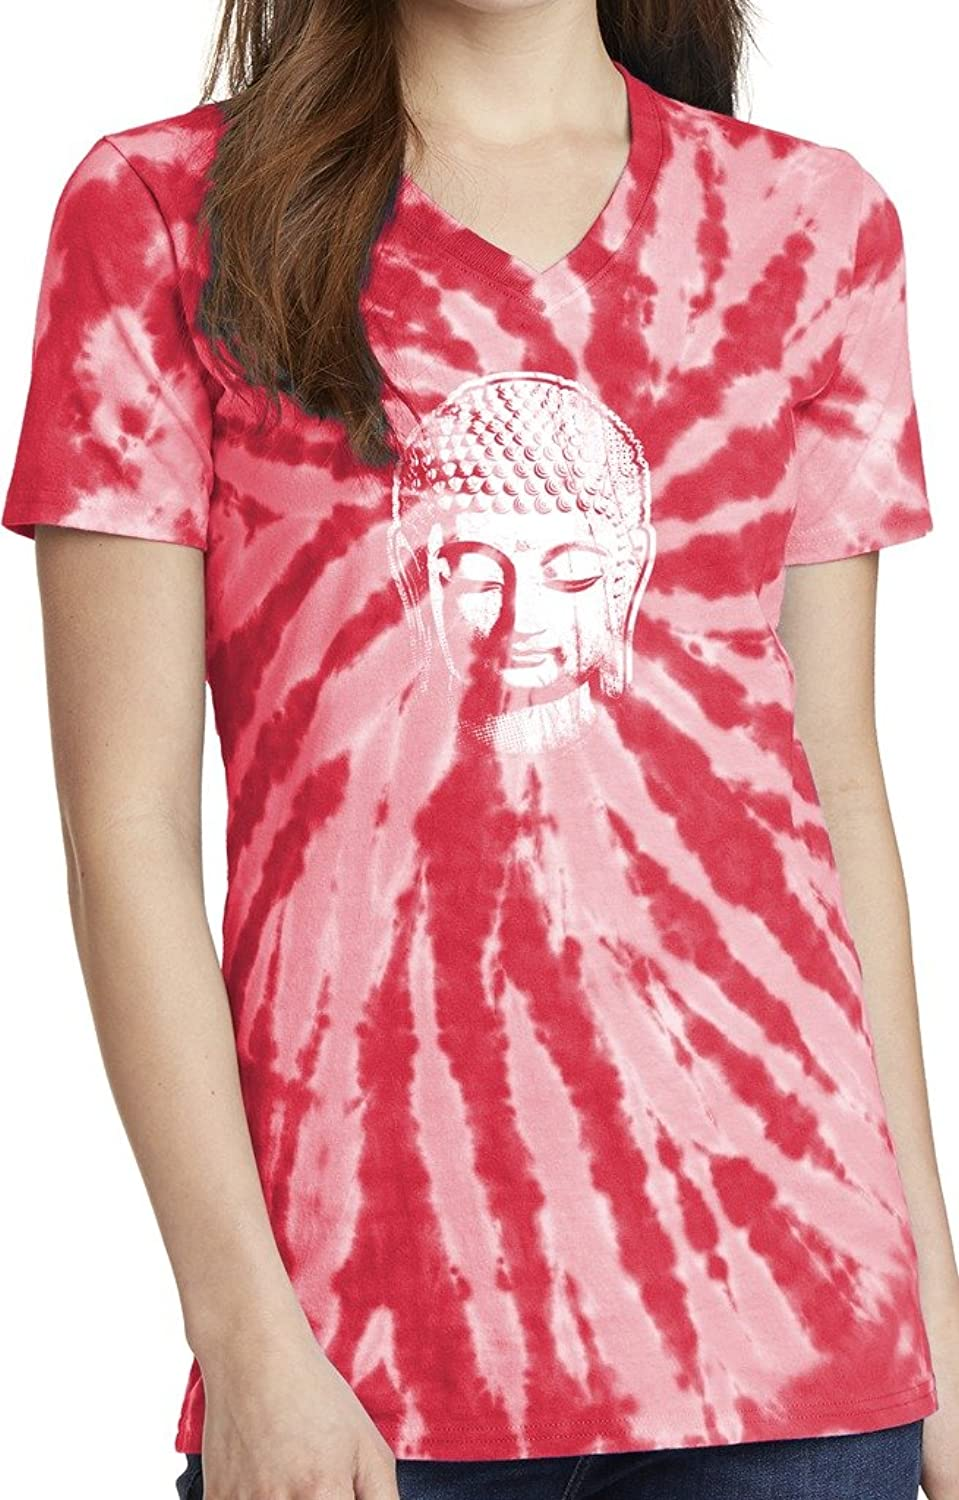 Yoga Clothing For You Ladies Little Buddha Tie Dye V-neck Tee Shirt